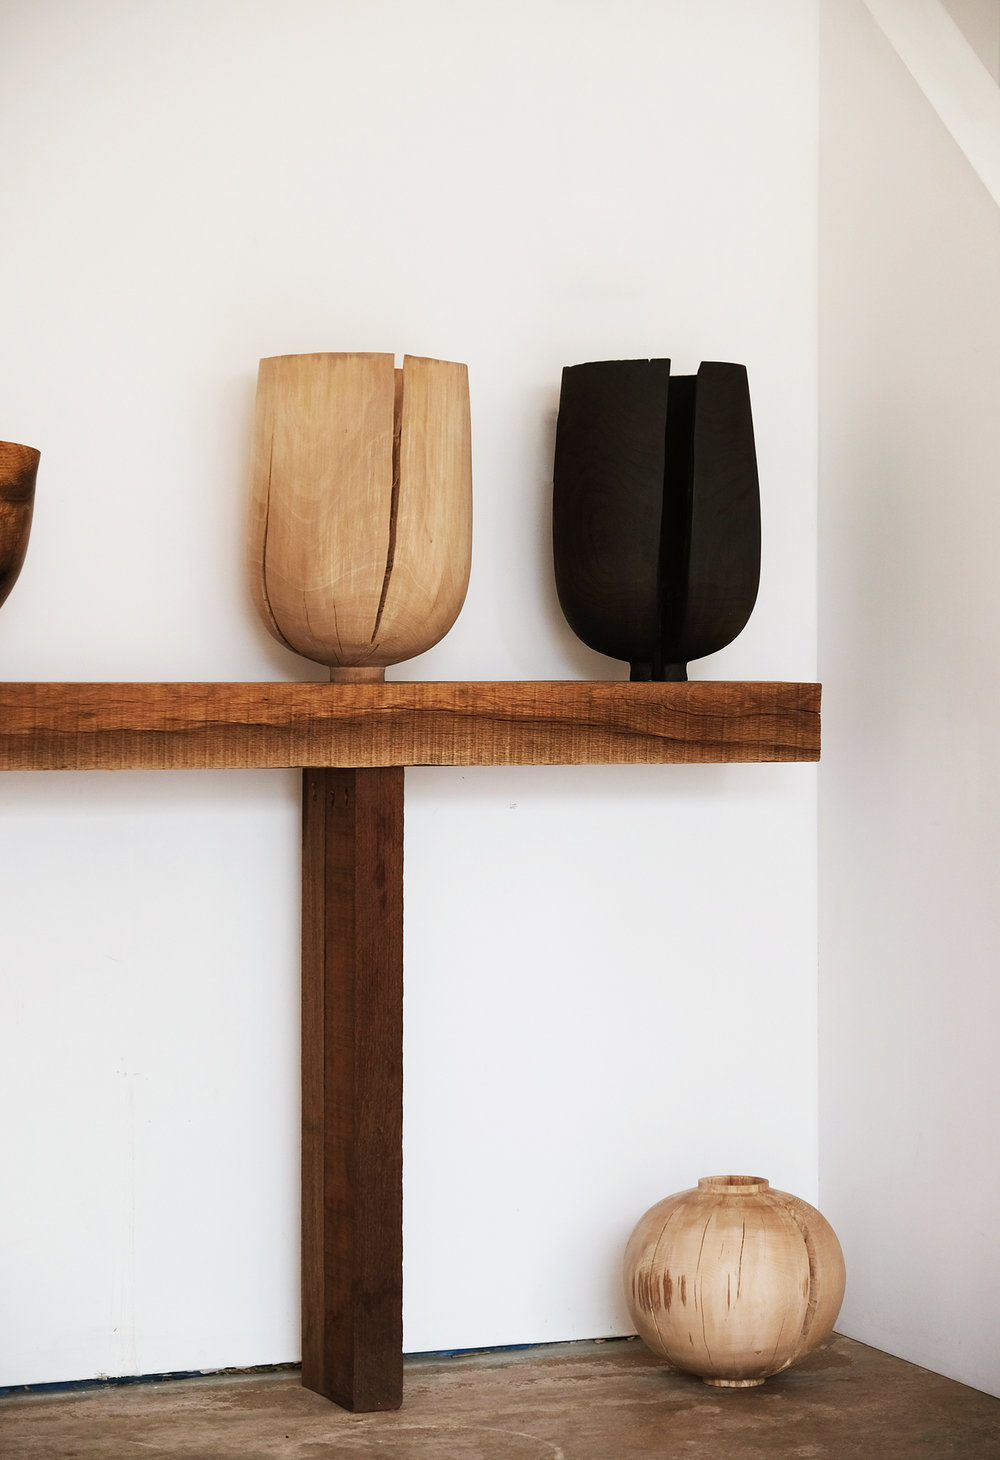 Split Beech Crucibles, Cracked Moon Jar | fresh beech wood, 2018  Installation View: Realising Landscape, The Space at Caro, Bruton